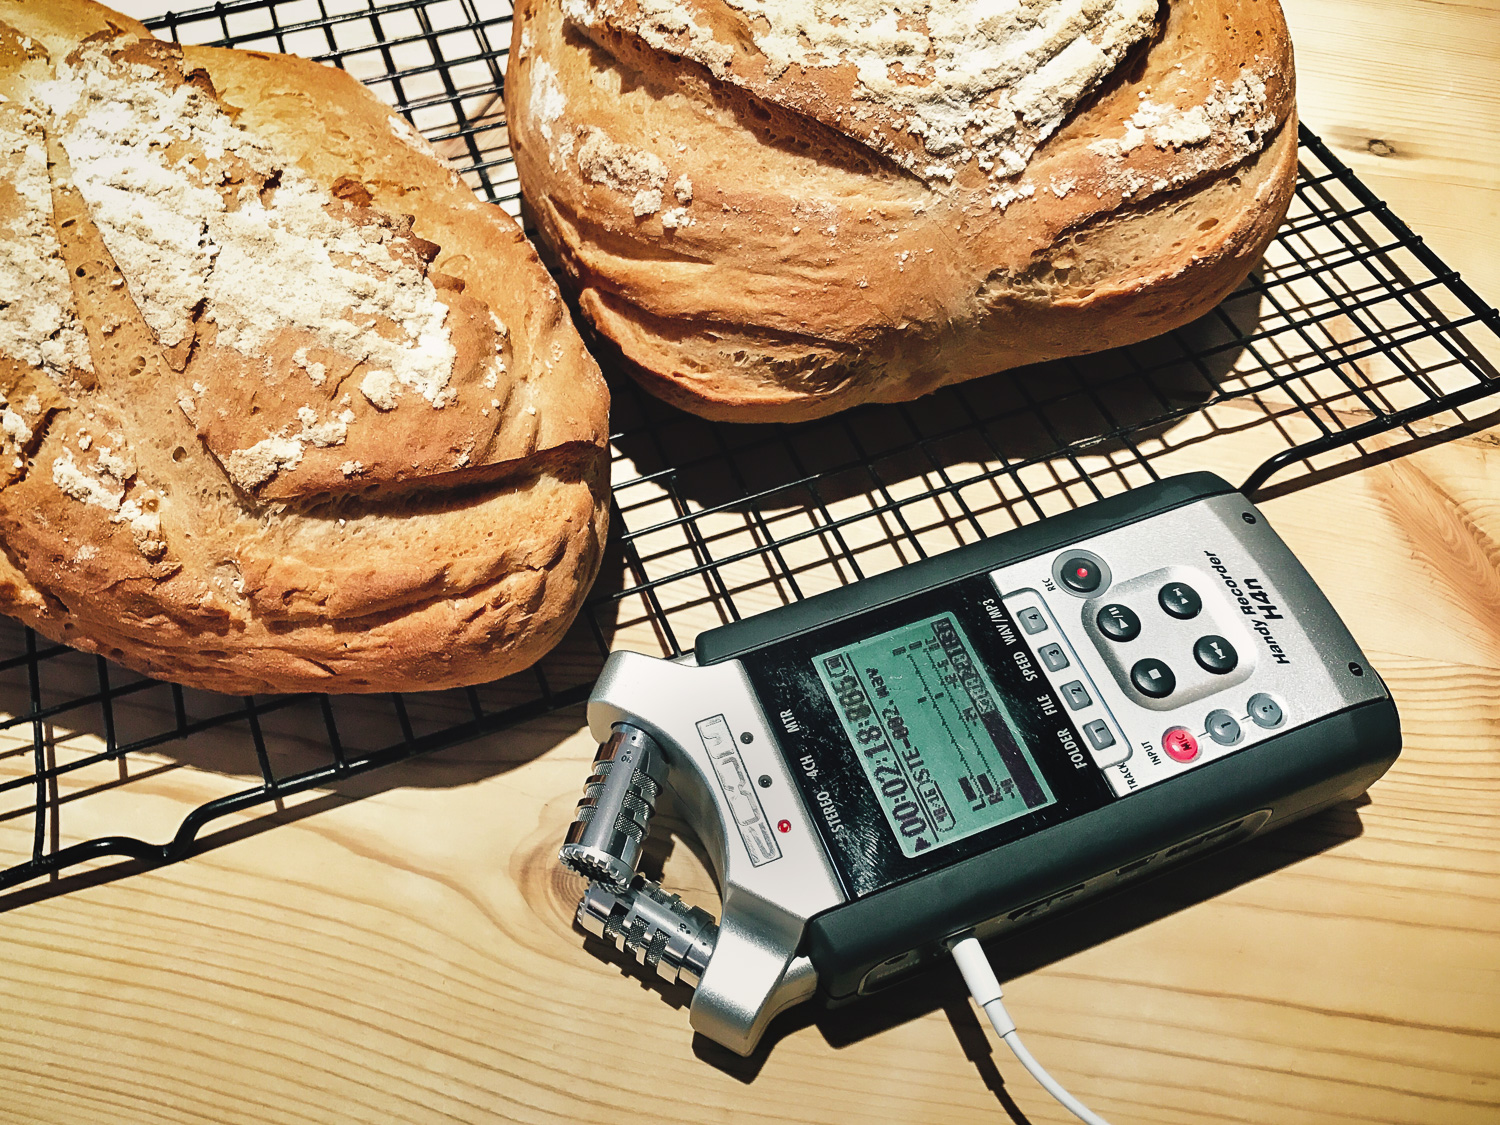 First attempt at sound recording